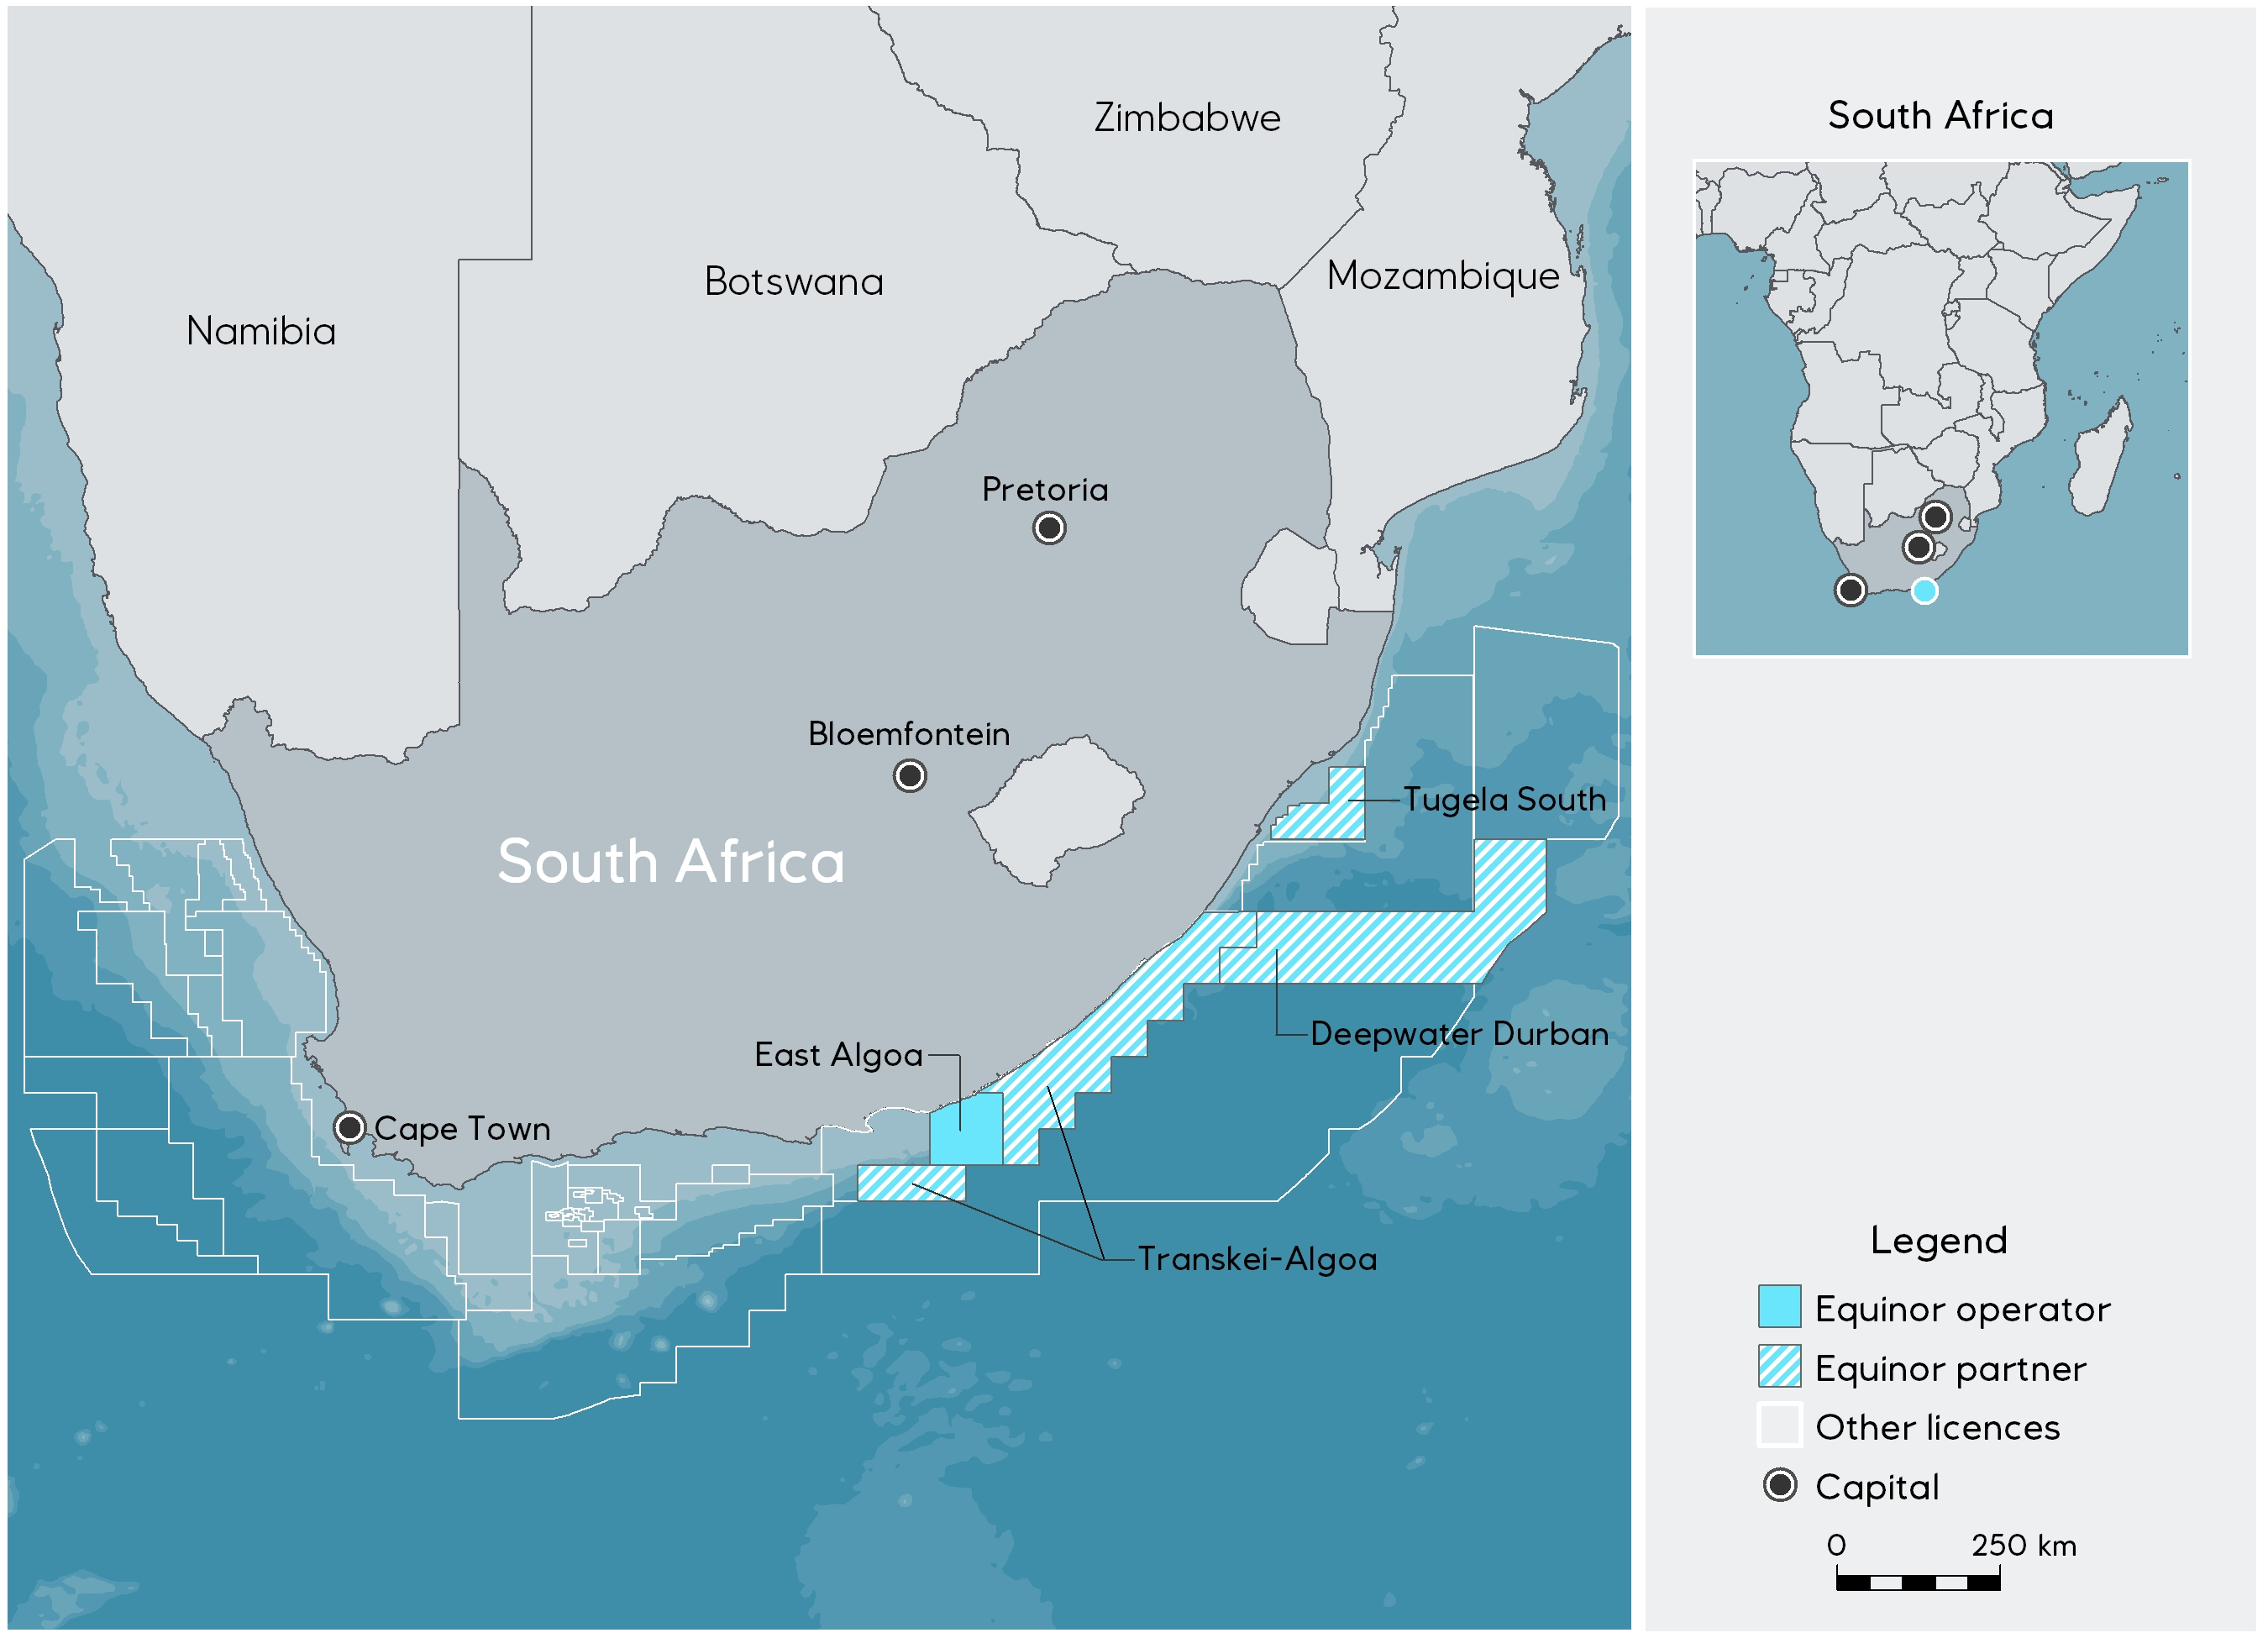 equinor-south-africa-180225.jpg